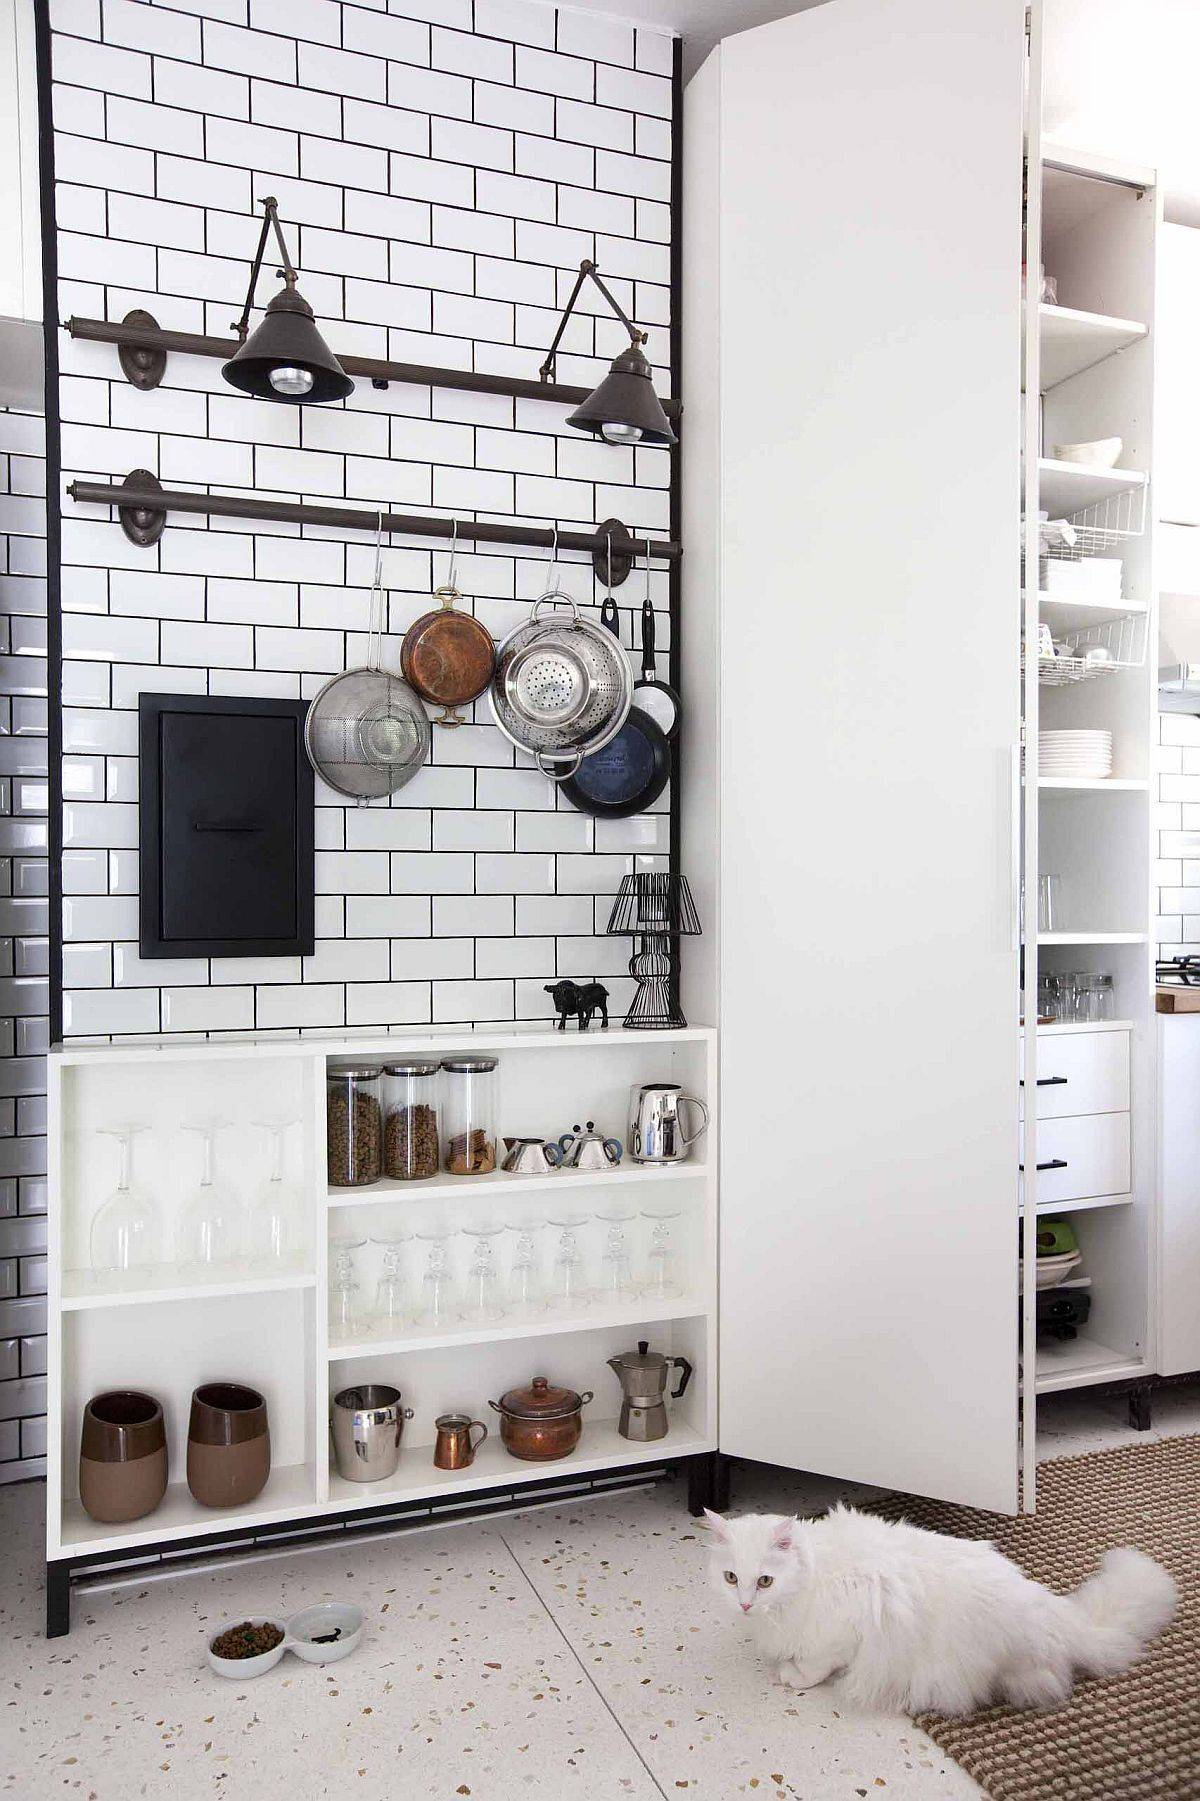 Turn-to-multiplae-storage-options-for-a-more-organized-kitchen-90039